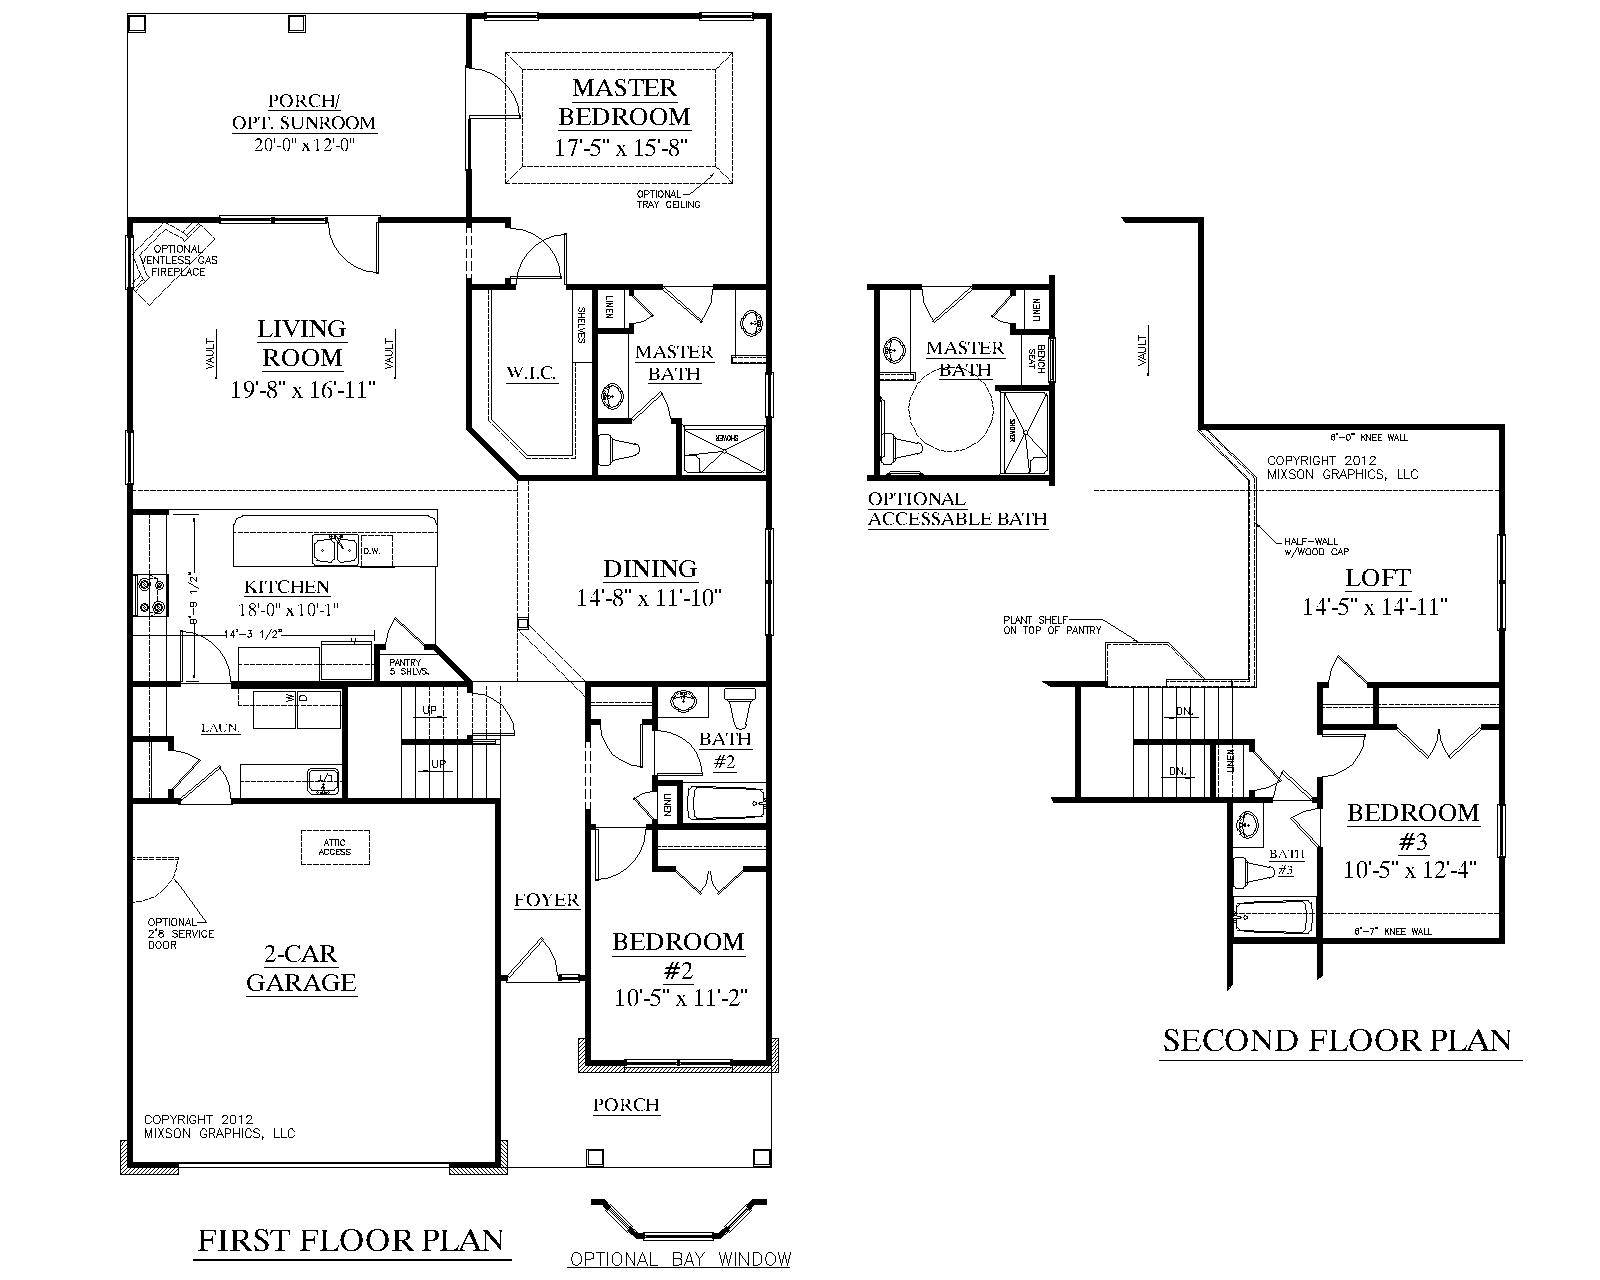 House Floor Plans Bedroom Bath Plan Kingstree